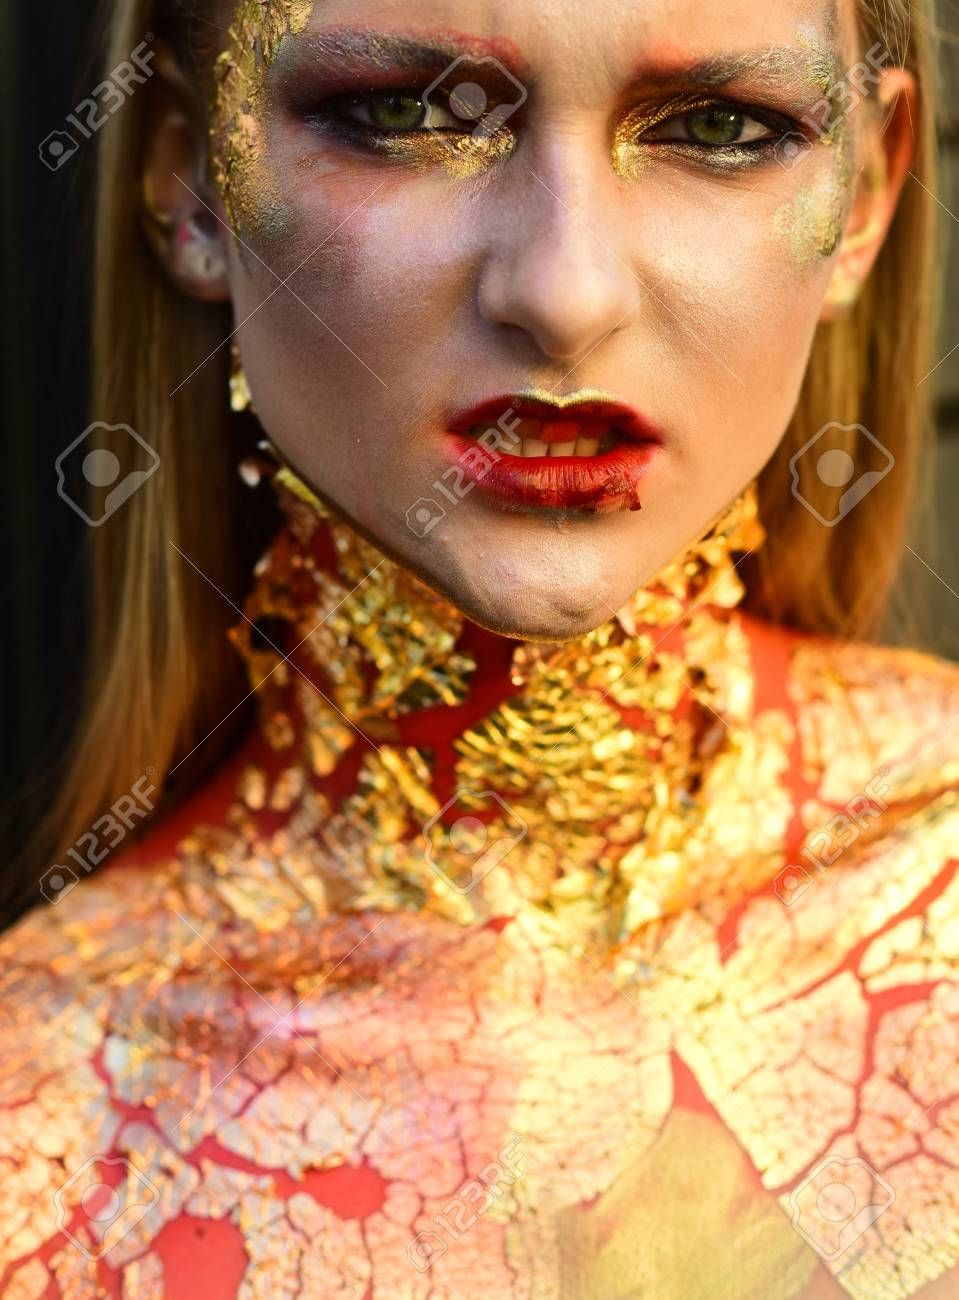 Halloween Vampire Zombie Woman With Cracked Skin And Makeup Eyes